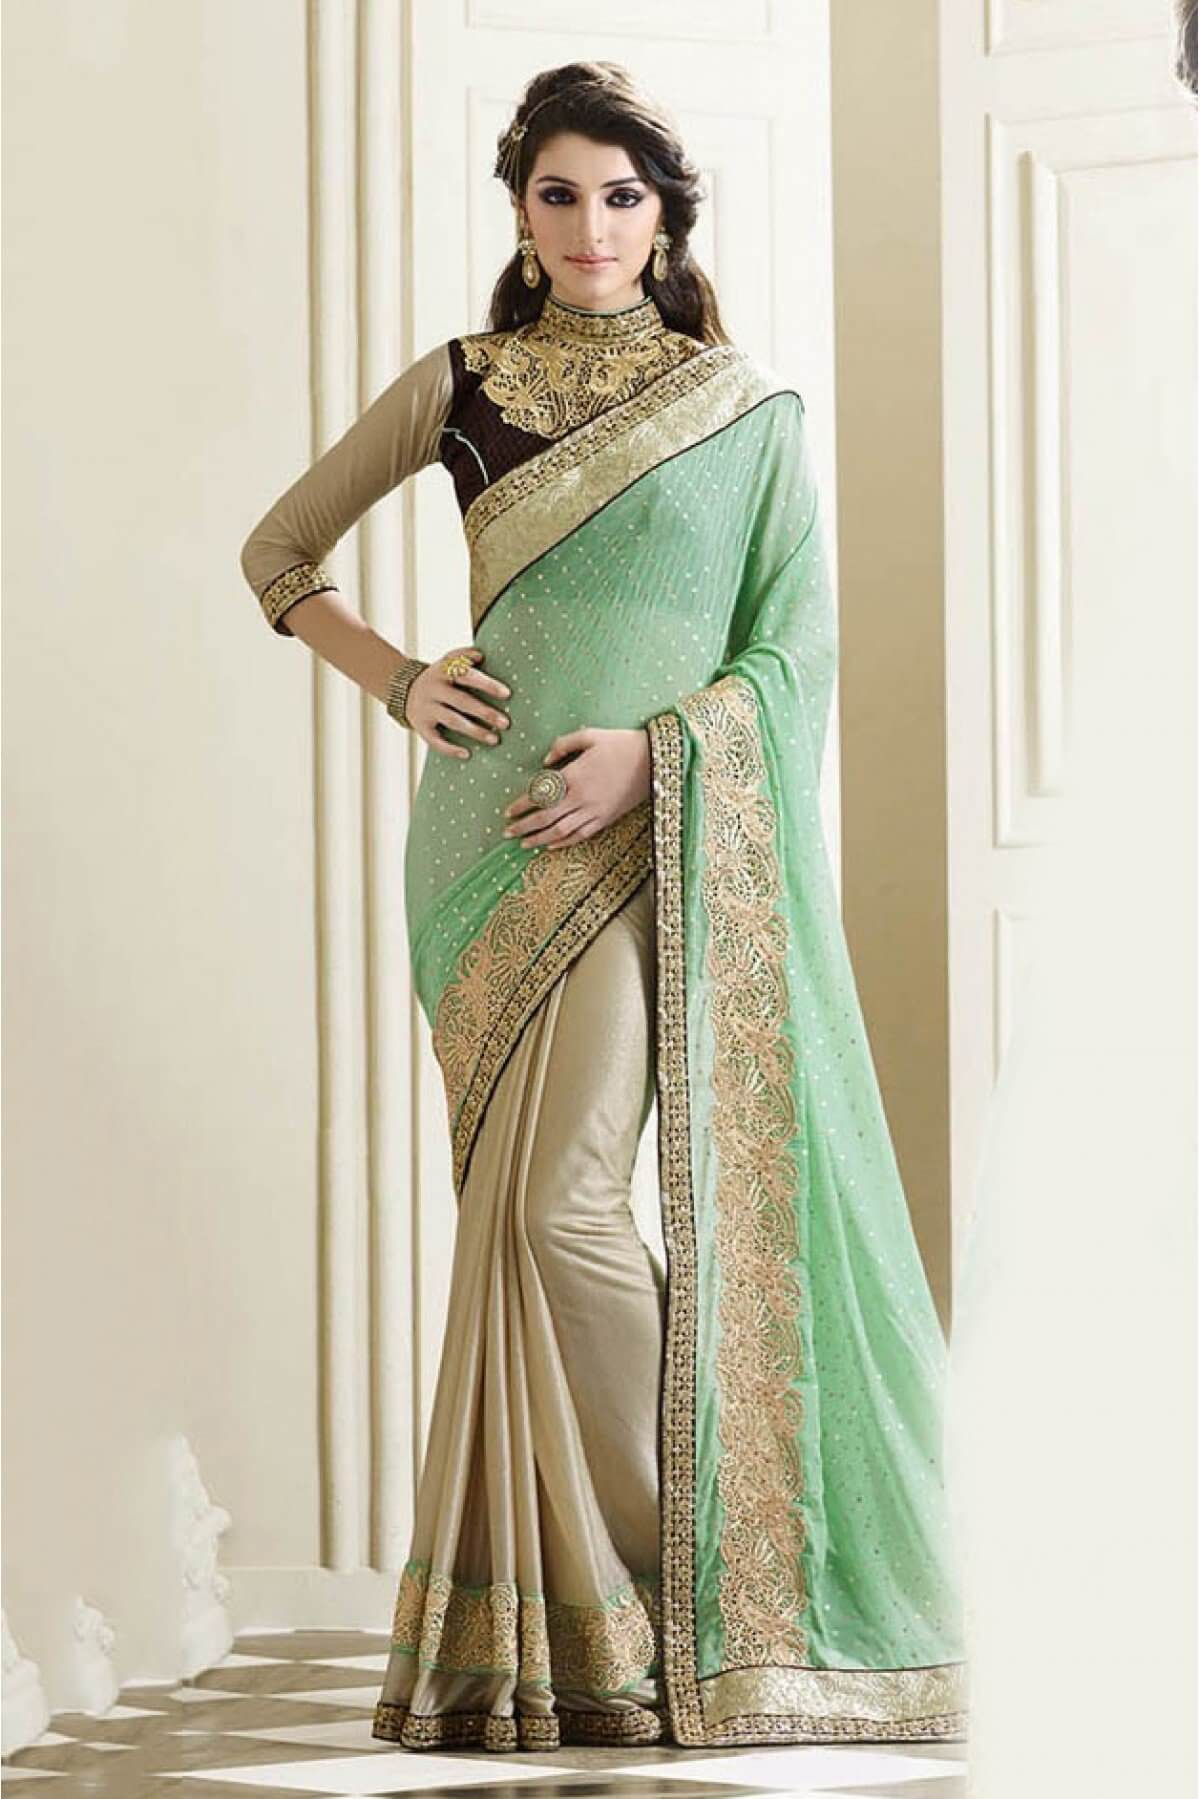 Latest New Saree Designs